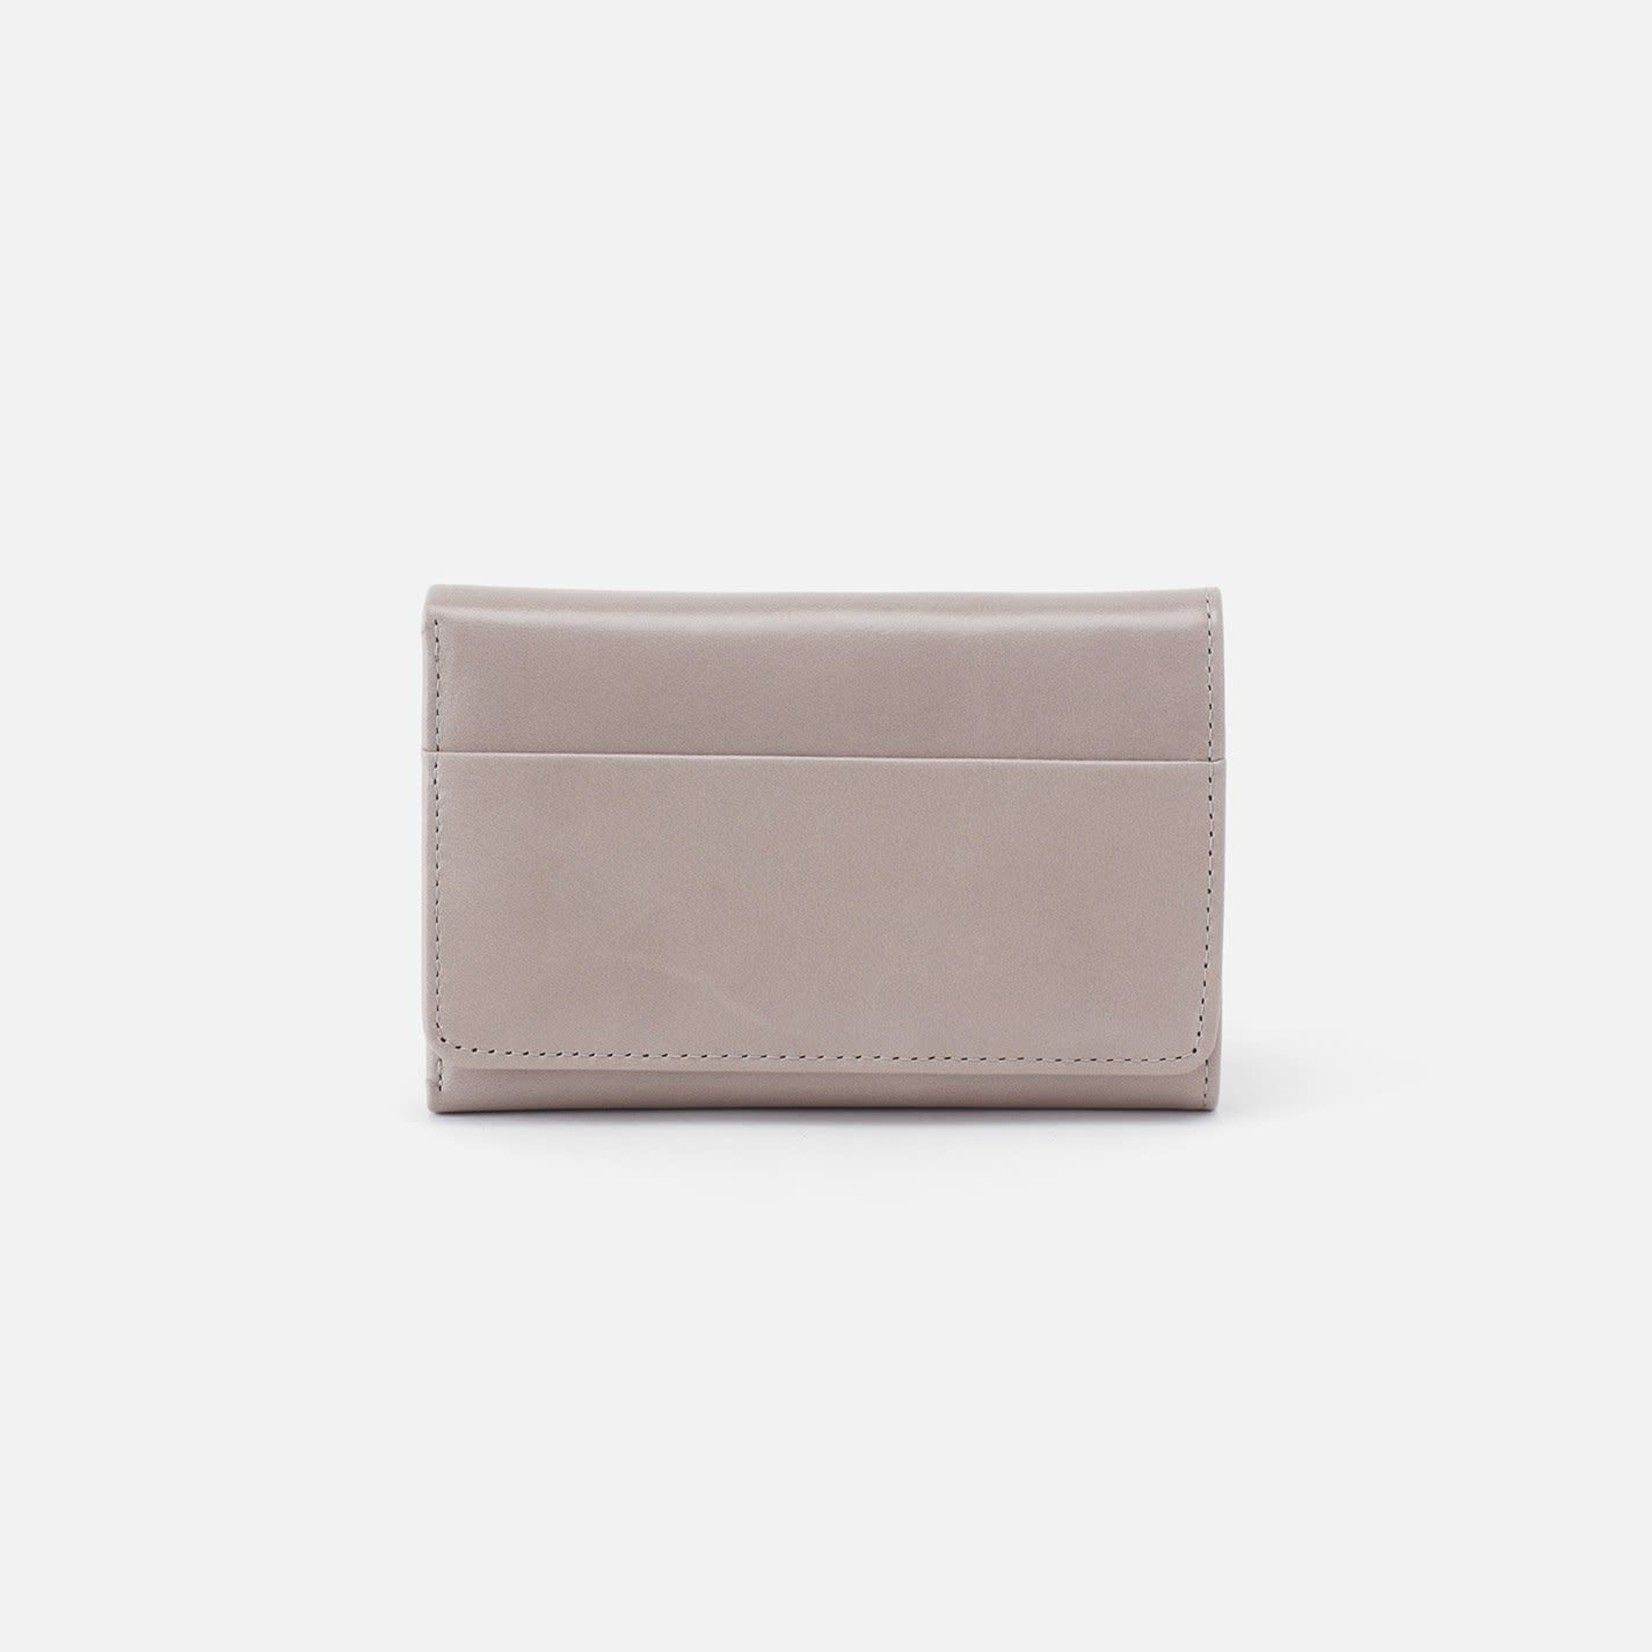 HOBO Jill Small Soft Leather Trifold Wallet - Driftwood